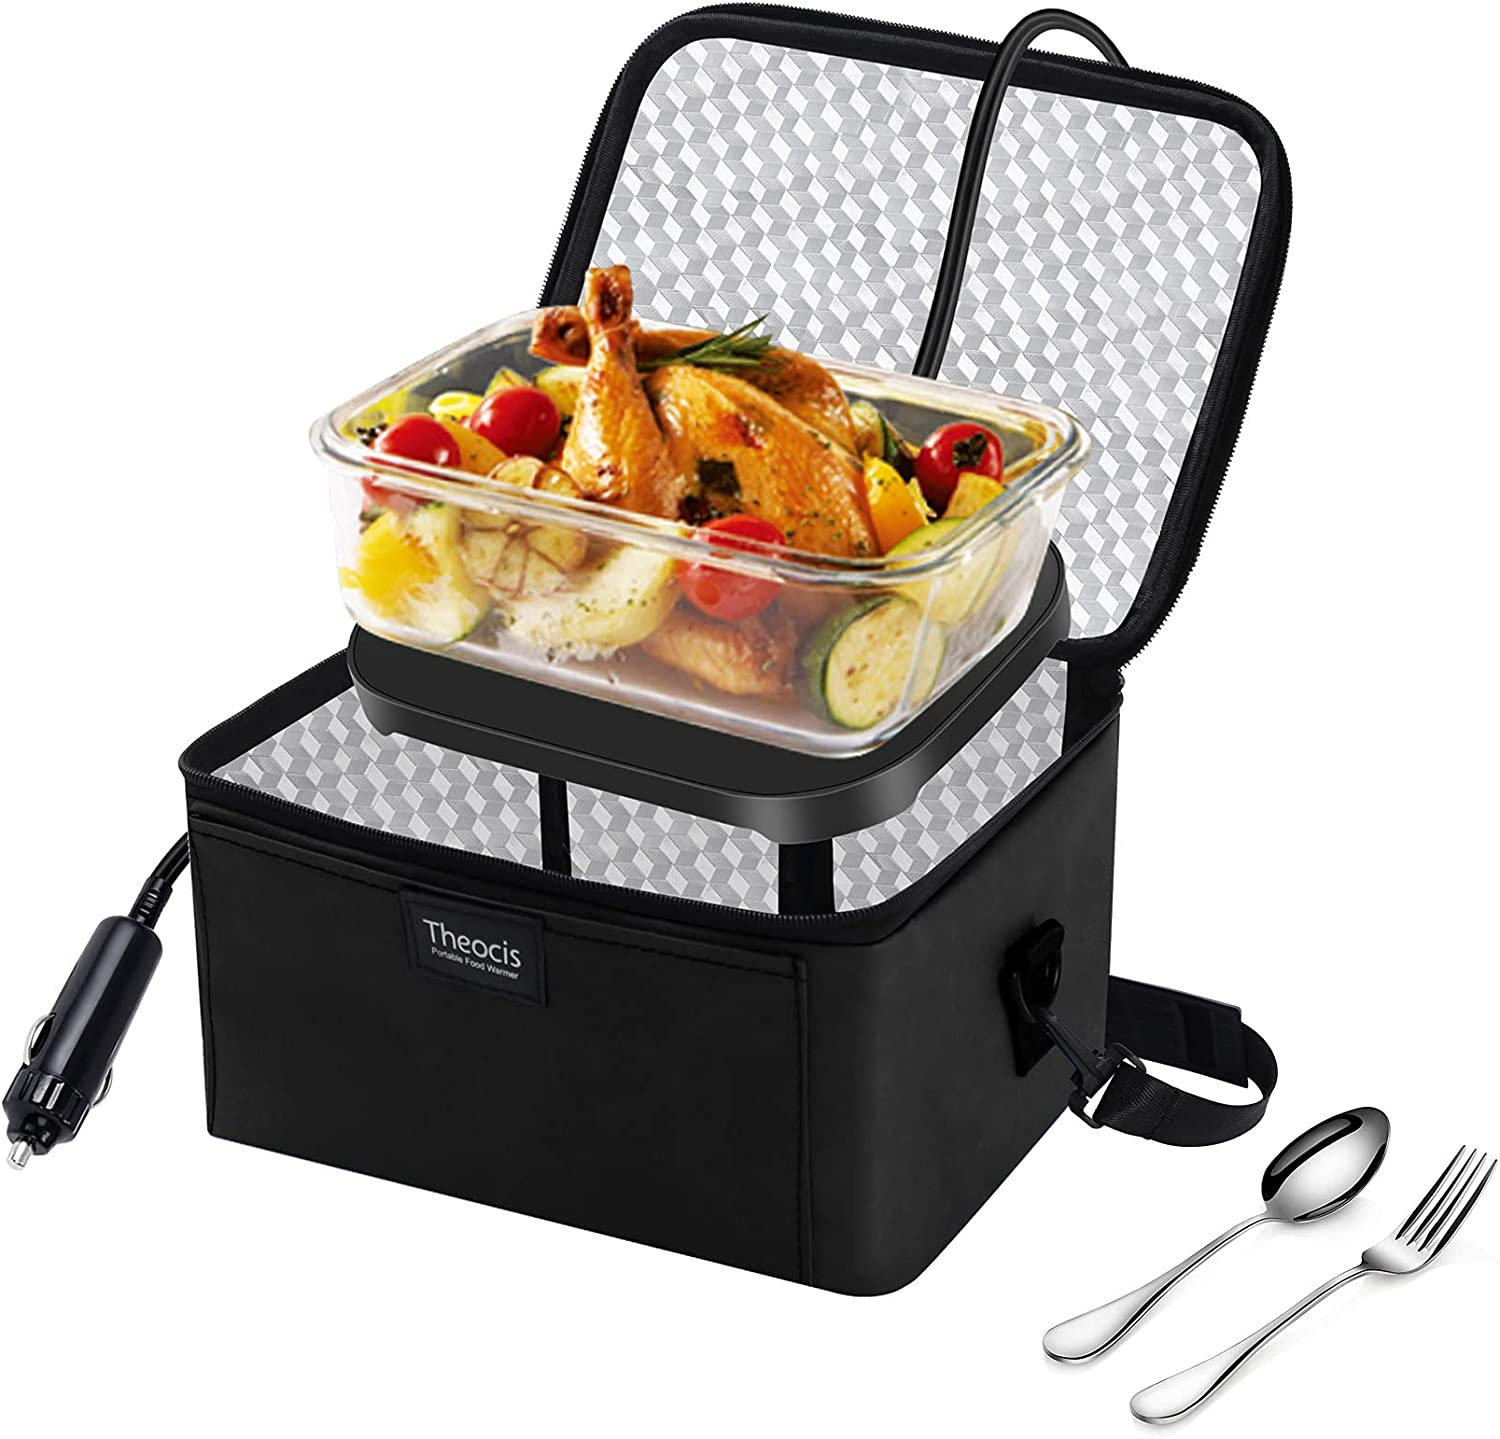 Personal Food Warmer, Car Heating Lunch Box, Portabe Slow Cooker for Meals Reheating & Raw Food Cooking, 12V for Camping, Travel, Picnic, Driver (Black)